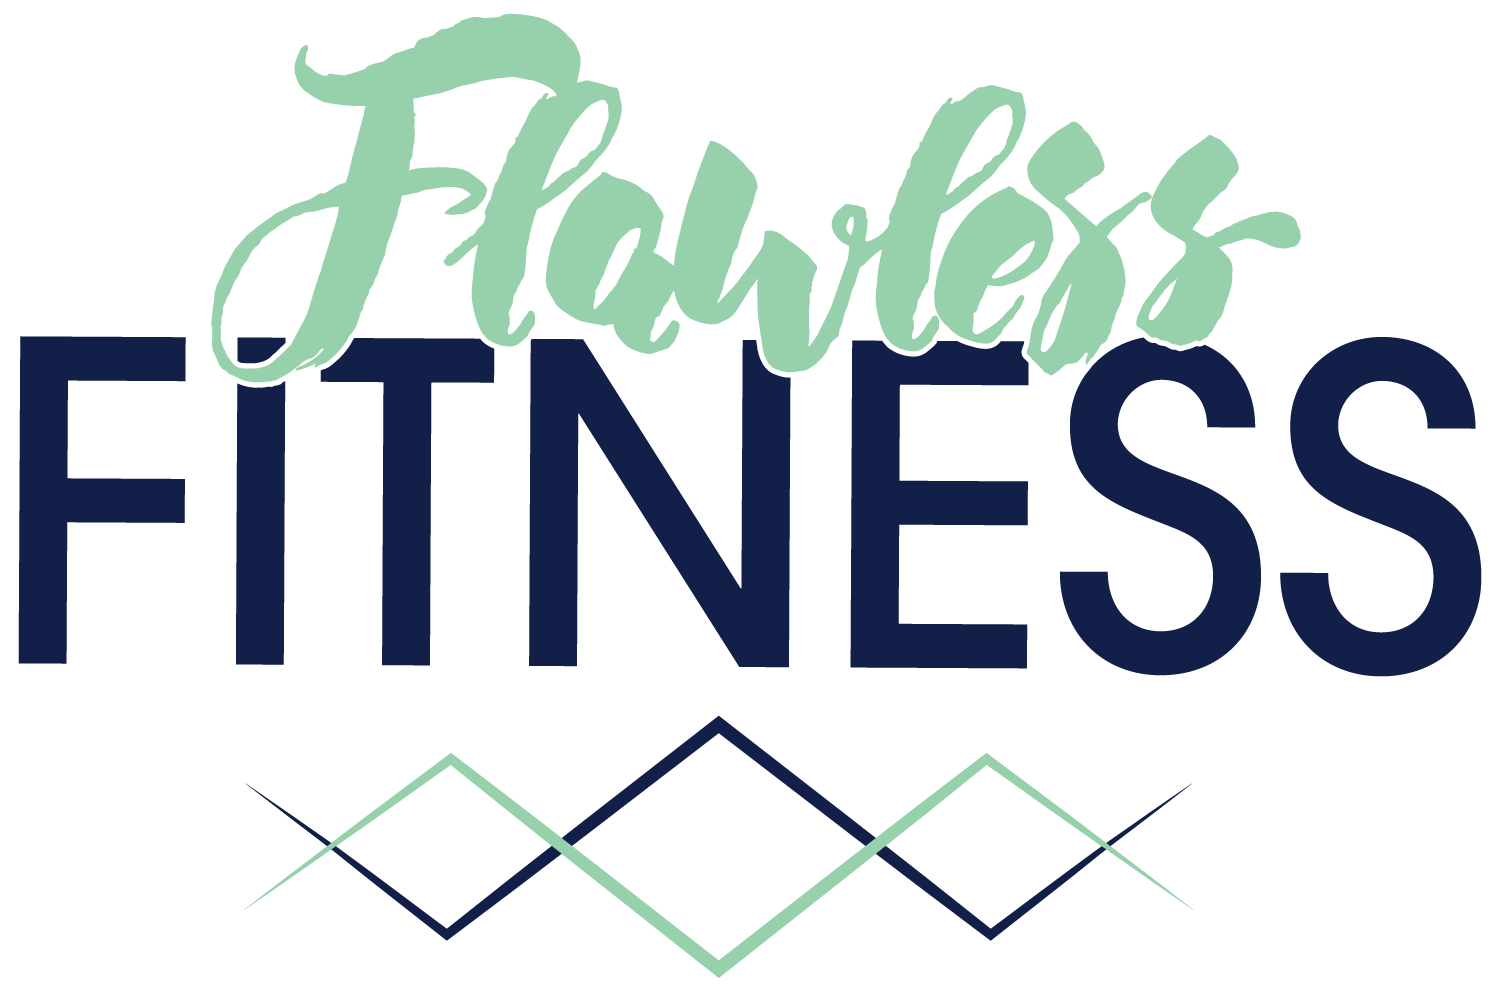 Flawless Fitness